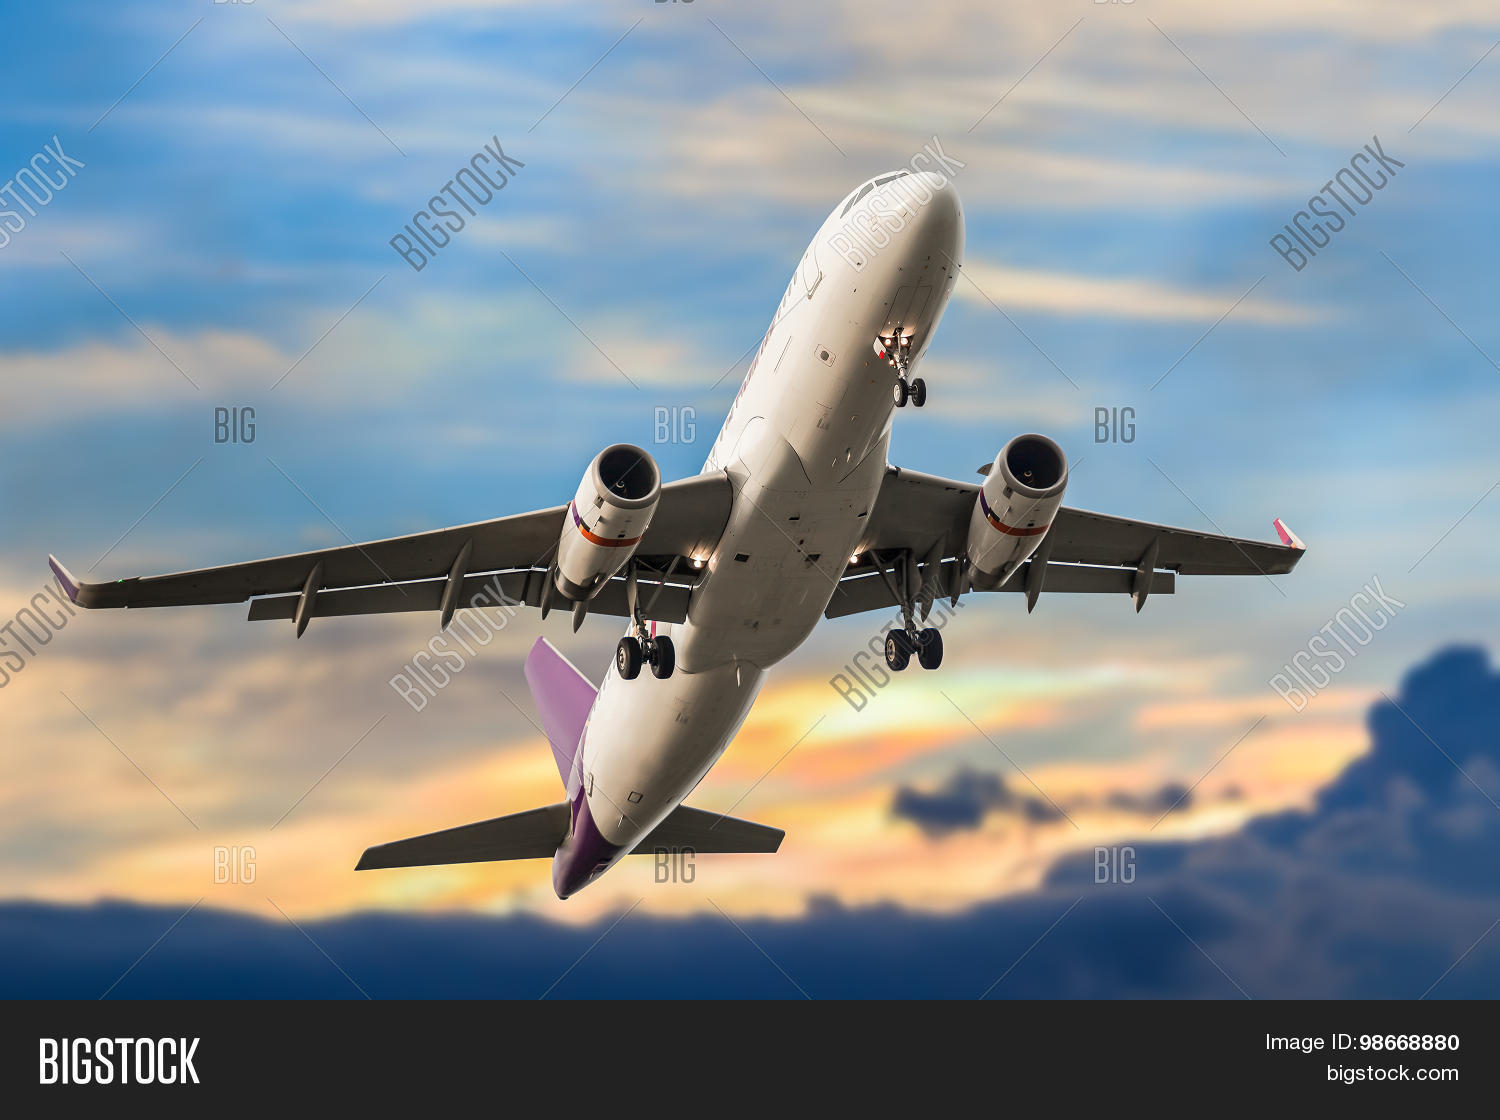 Passenger Business Image & Photo (Free Trial) | Bigstock